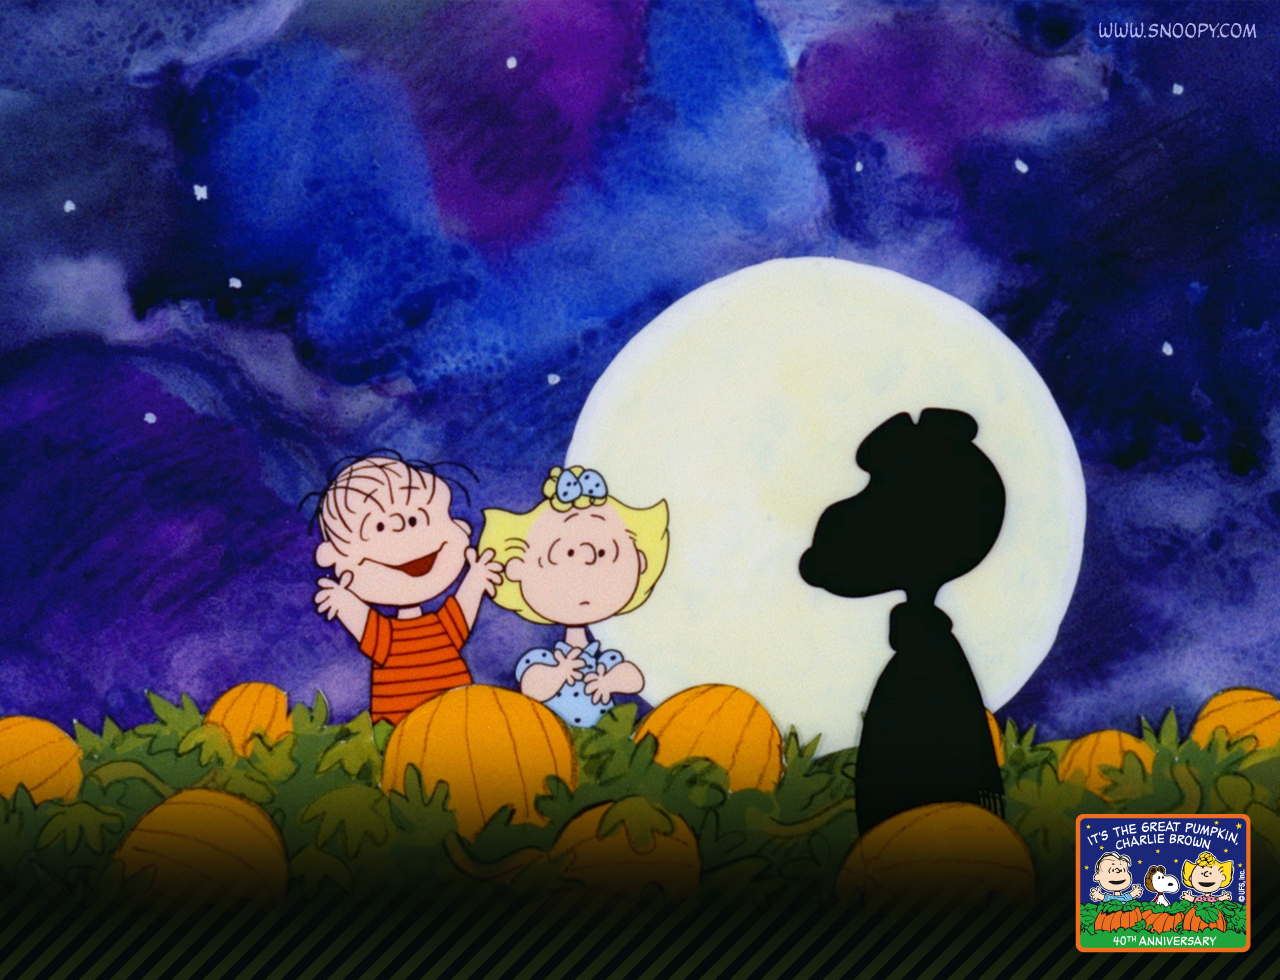 1000+ images about Charlie Brown great pumpkin on Pinterest